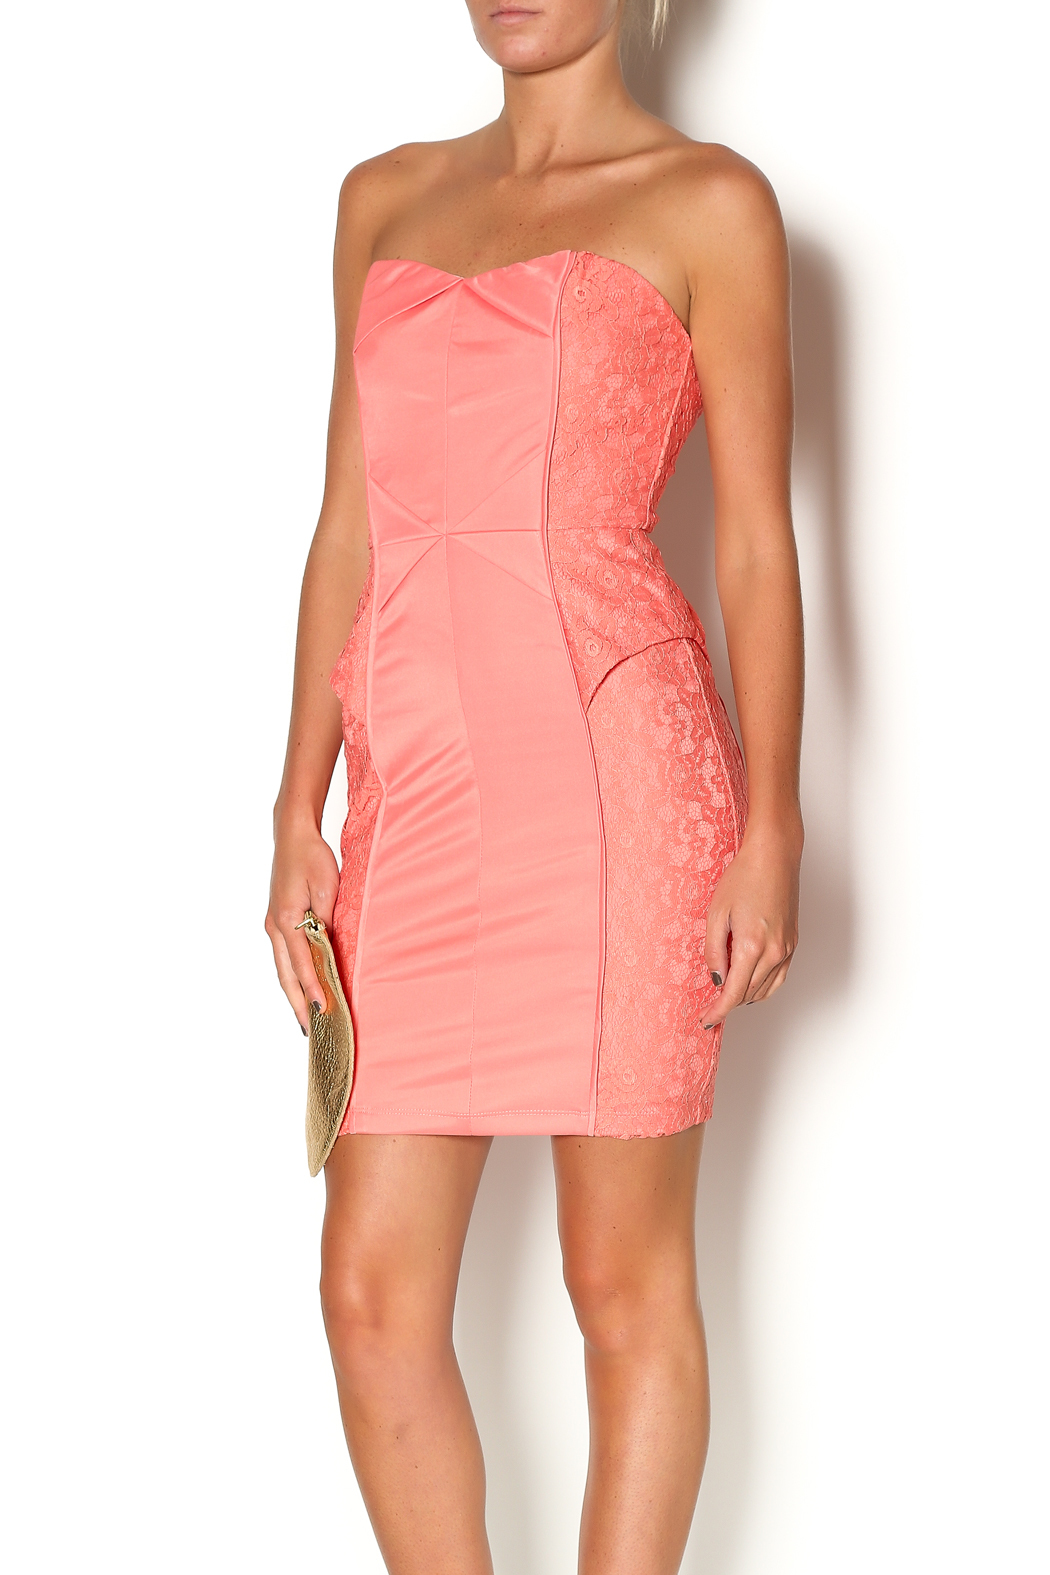 Abby & Taylor Strapless Coral Lace Dress - Main Image